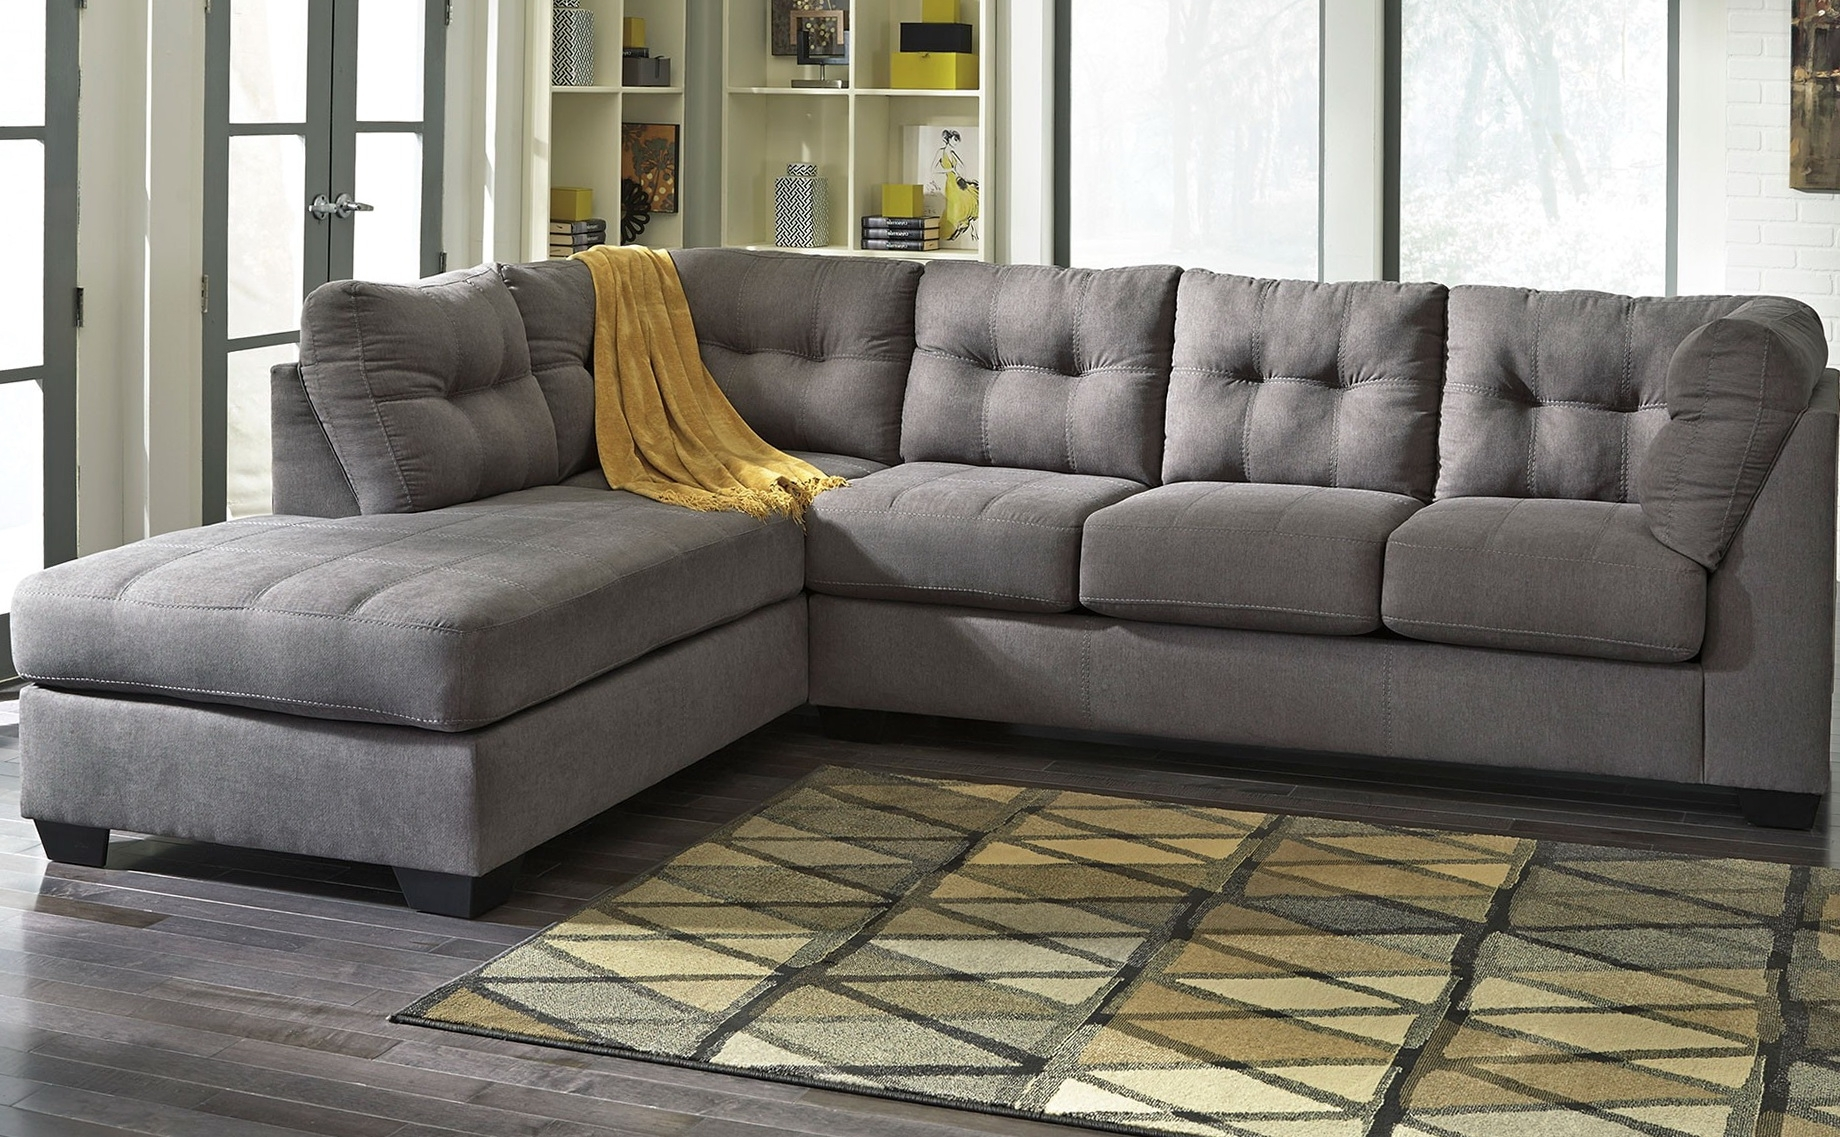 Well Known Perfect Grey Sectional Sofa With Chaise 31 For Your Modern Sofa Regarding Grey Chaise Sofas (View 10 of 15)